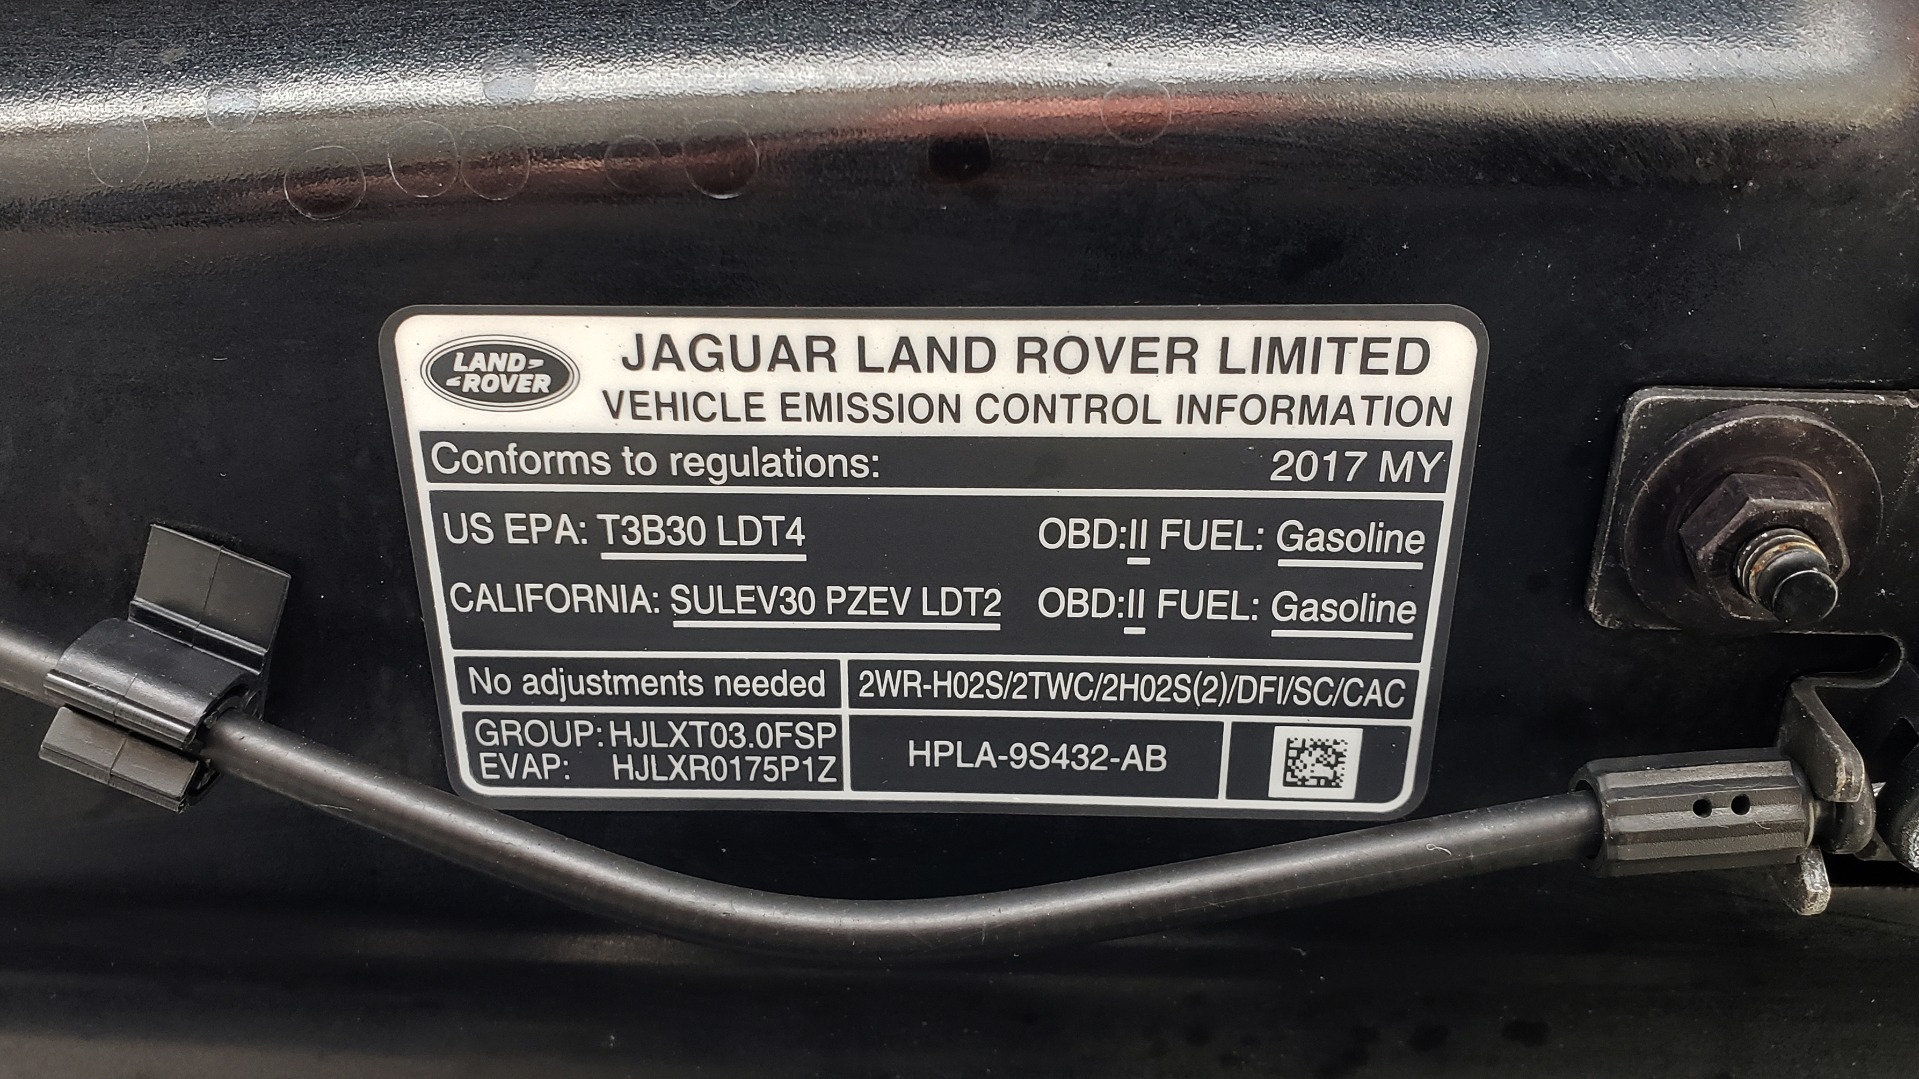 Used 2017 Land Rover RANGE ROVER SPORT HSE DYNAMIC / SC V6 / NAV / MERIDIAN / PANO-ROOF / REARVIEW for sale Sold at Formula Imports in Charlotte NC 28227 115